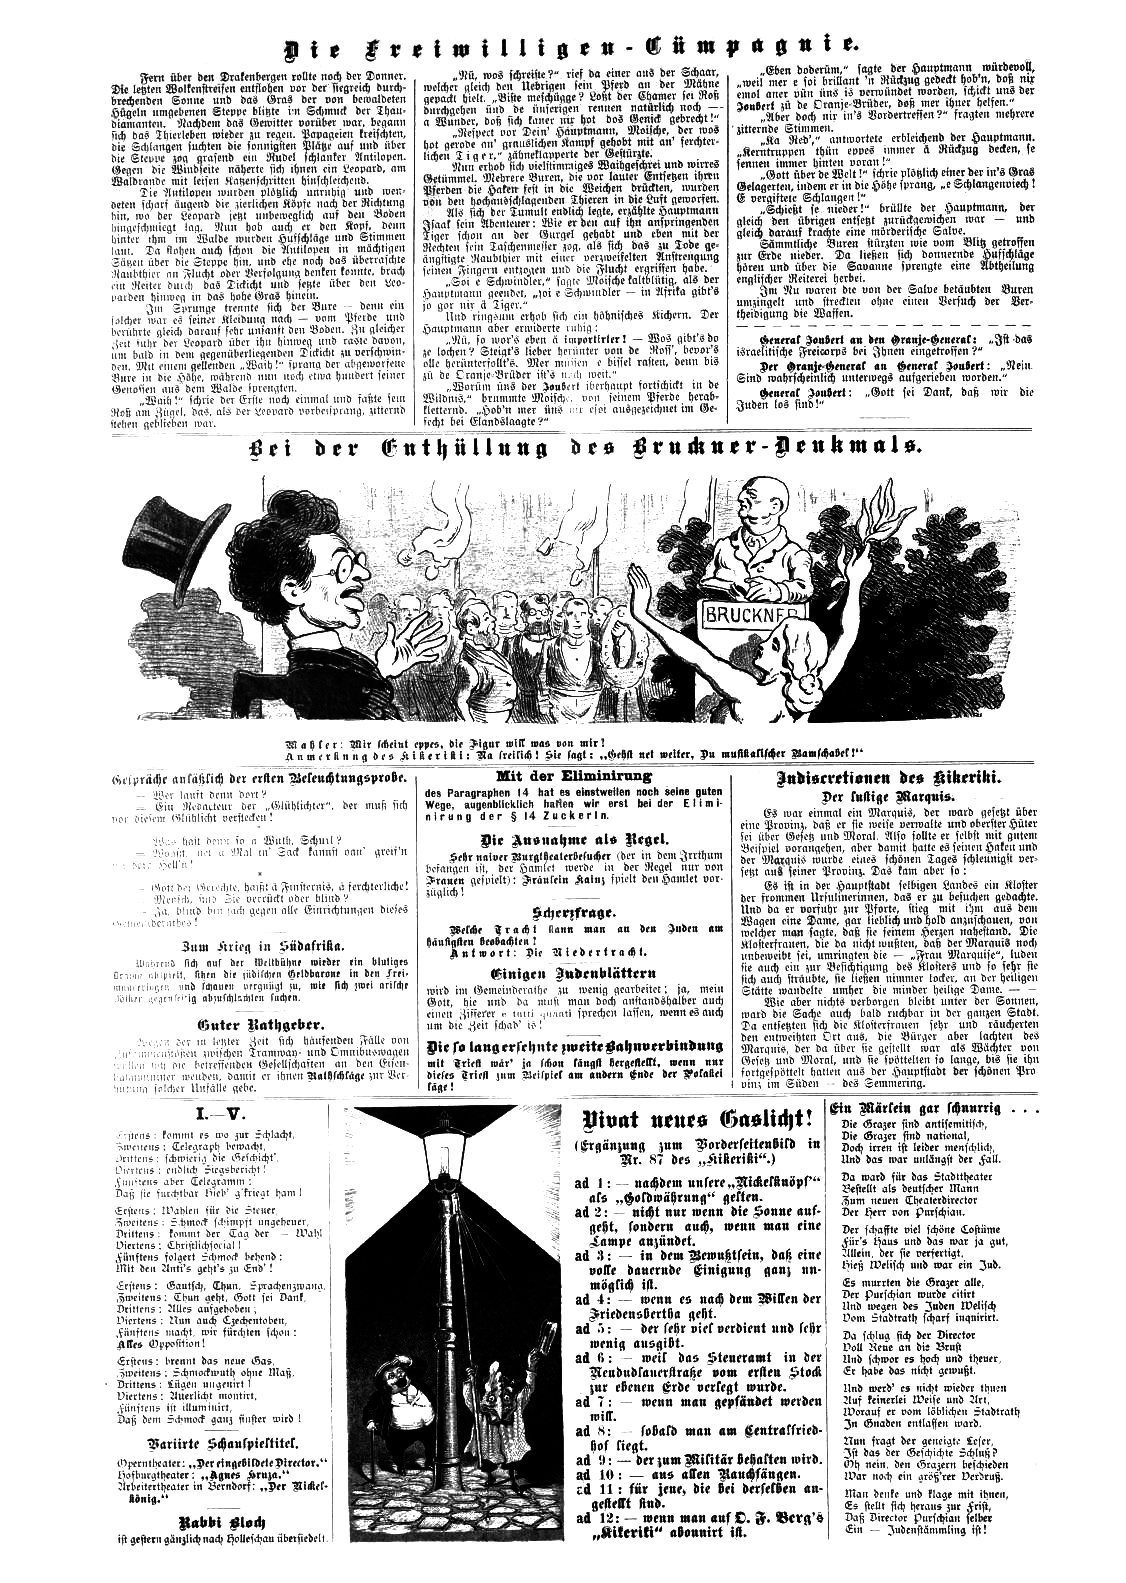 The cartoon as shown in the newspaper